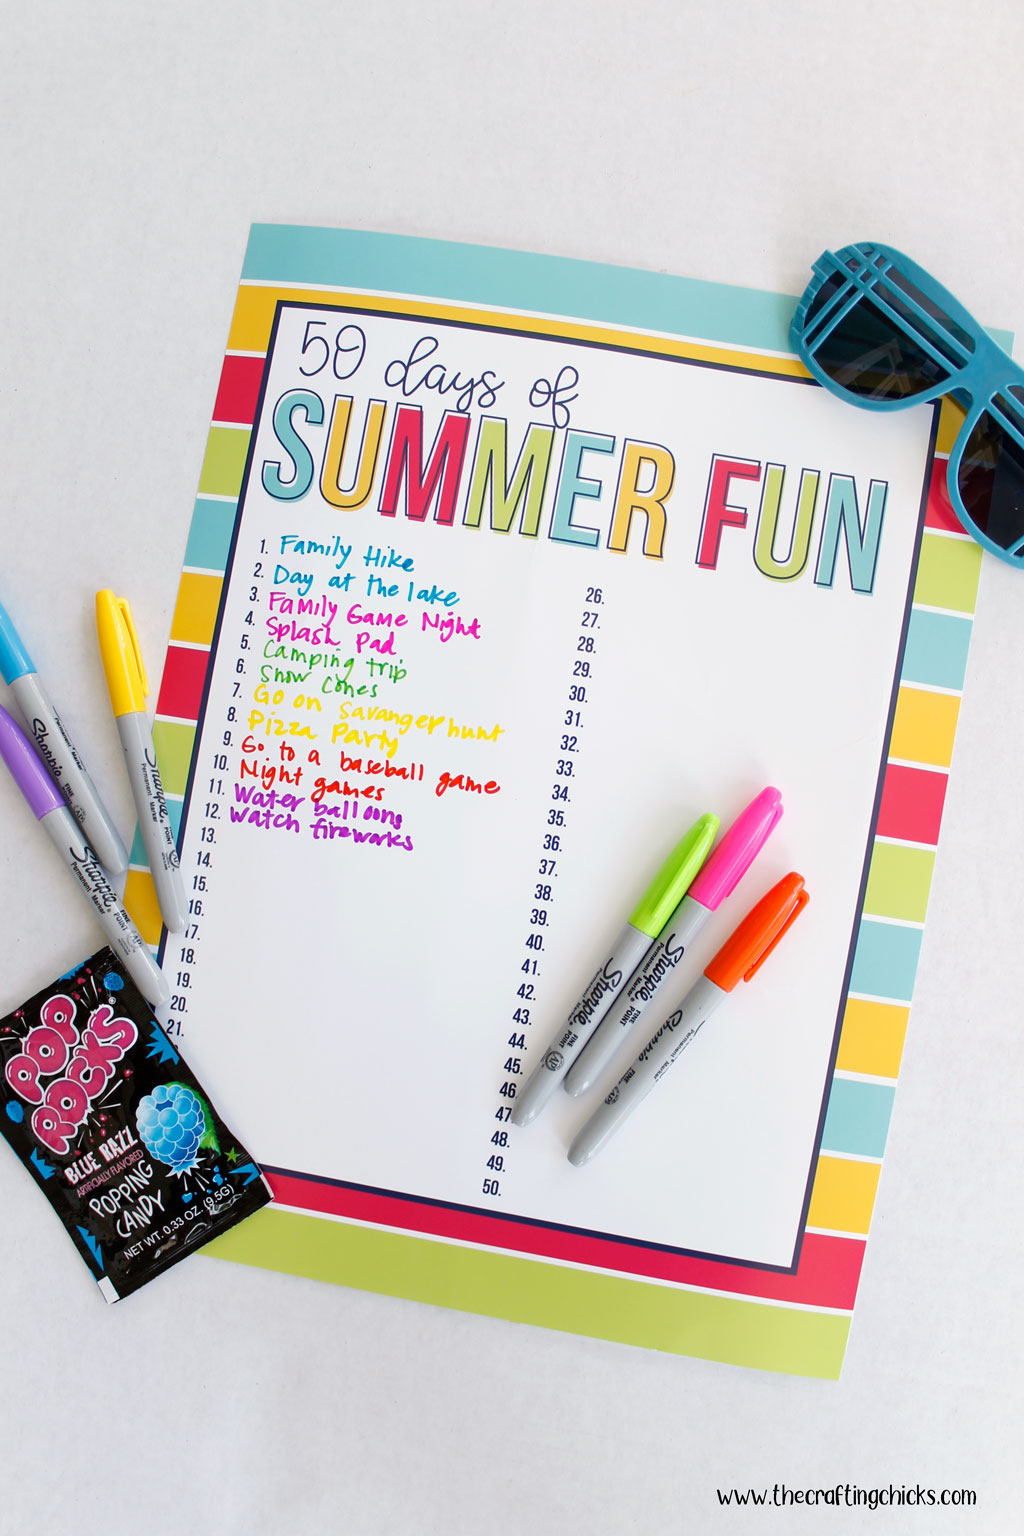 List started on the 50 Days of Summer Fun Chart